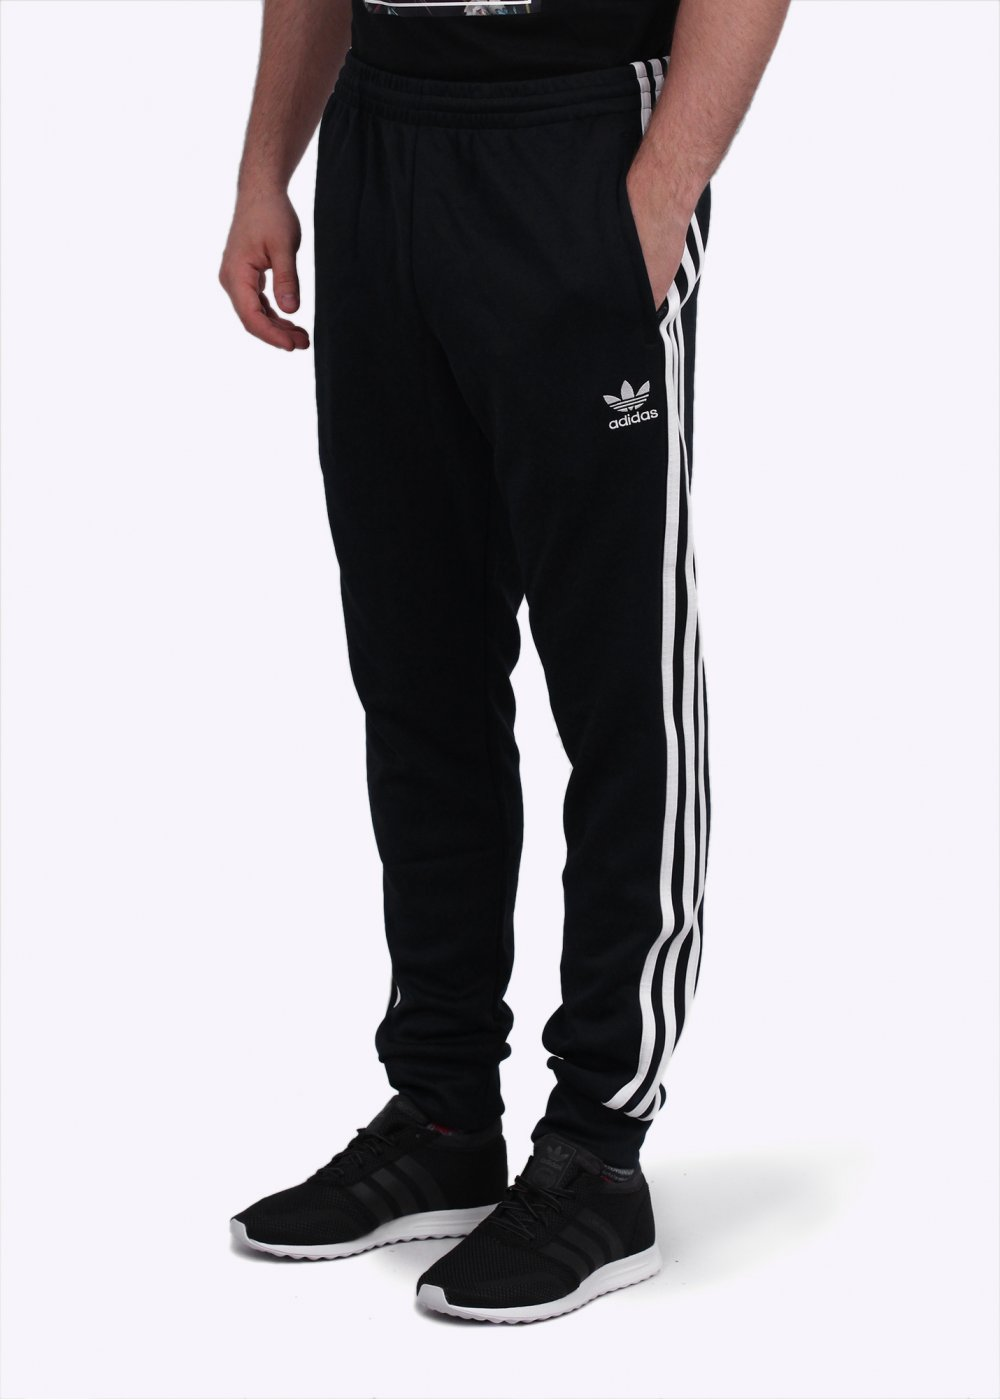 87cb7ee716 adidas Originals Apparel SST Cuffed Track Pants - Black